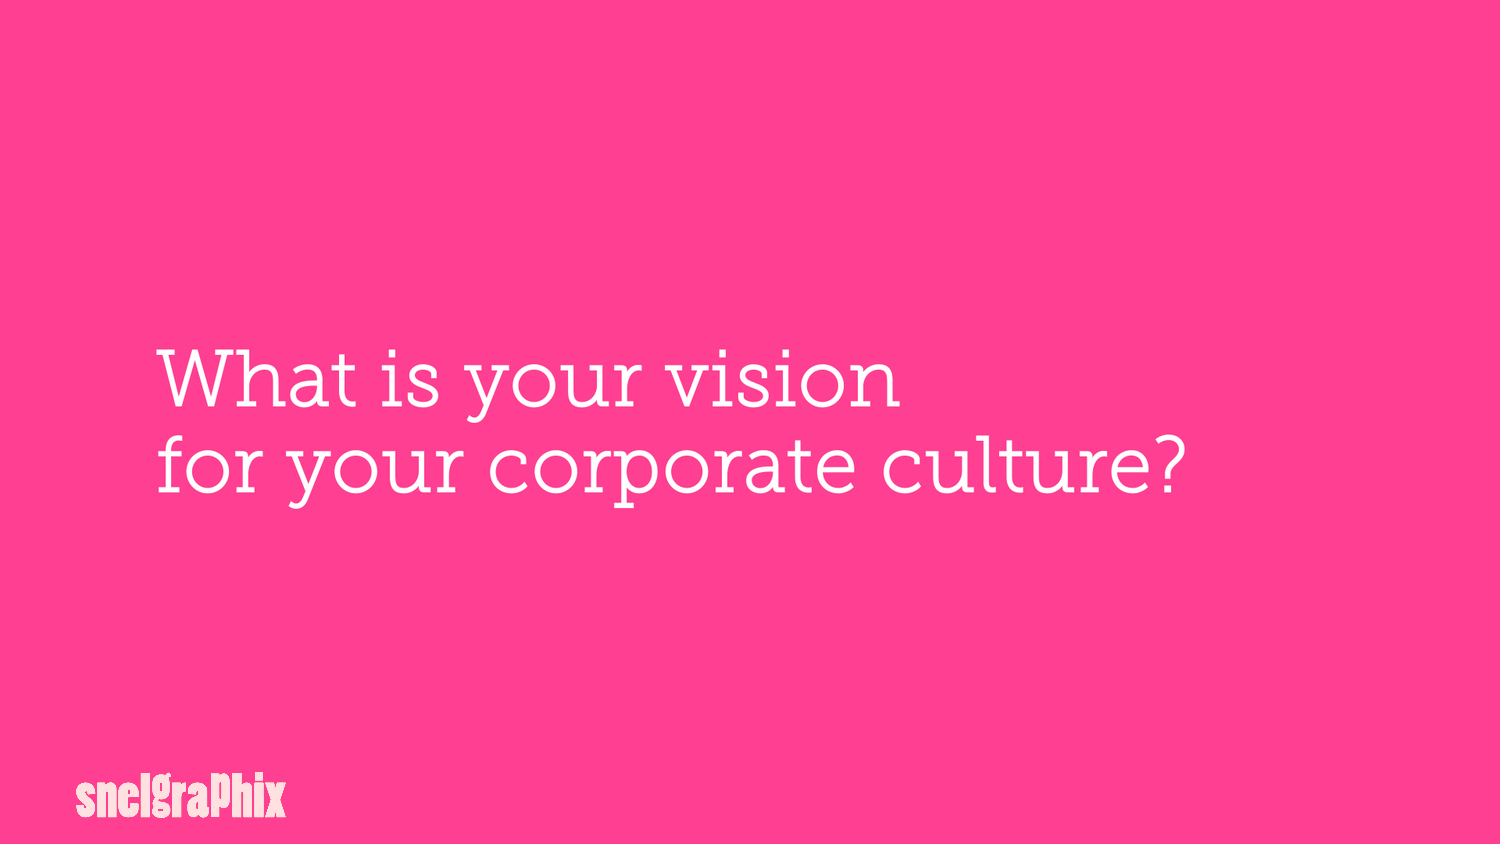 Do you have a competitive vision for your corporate culture?